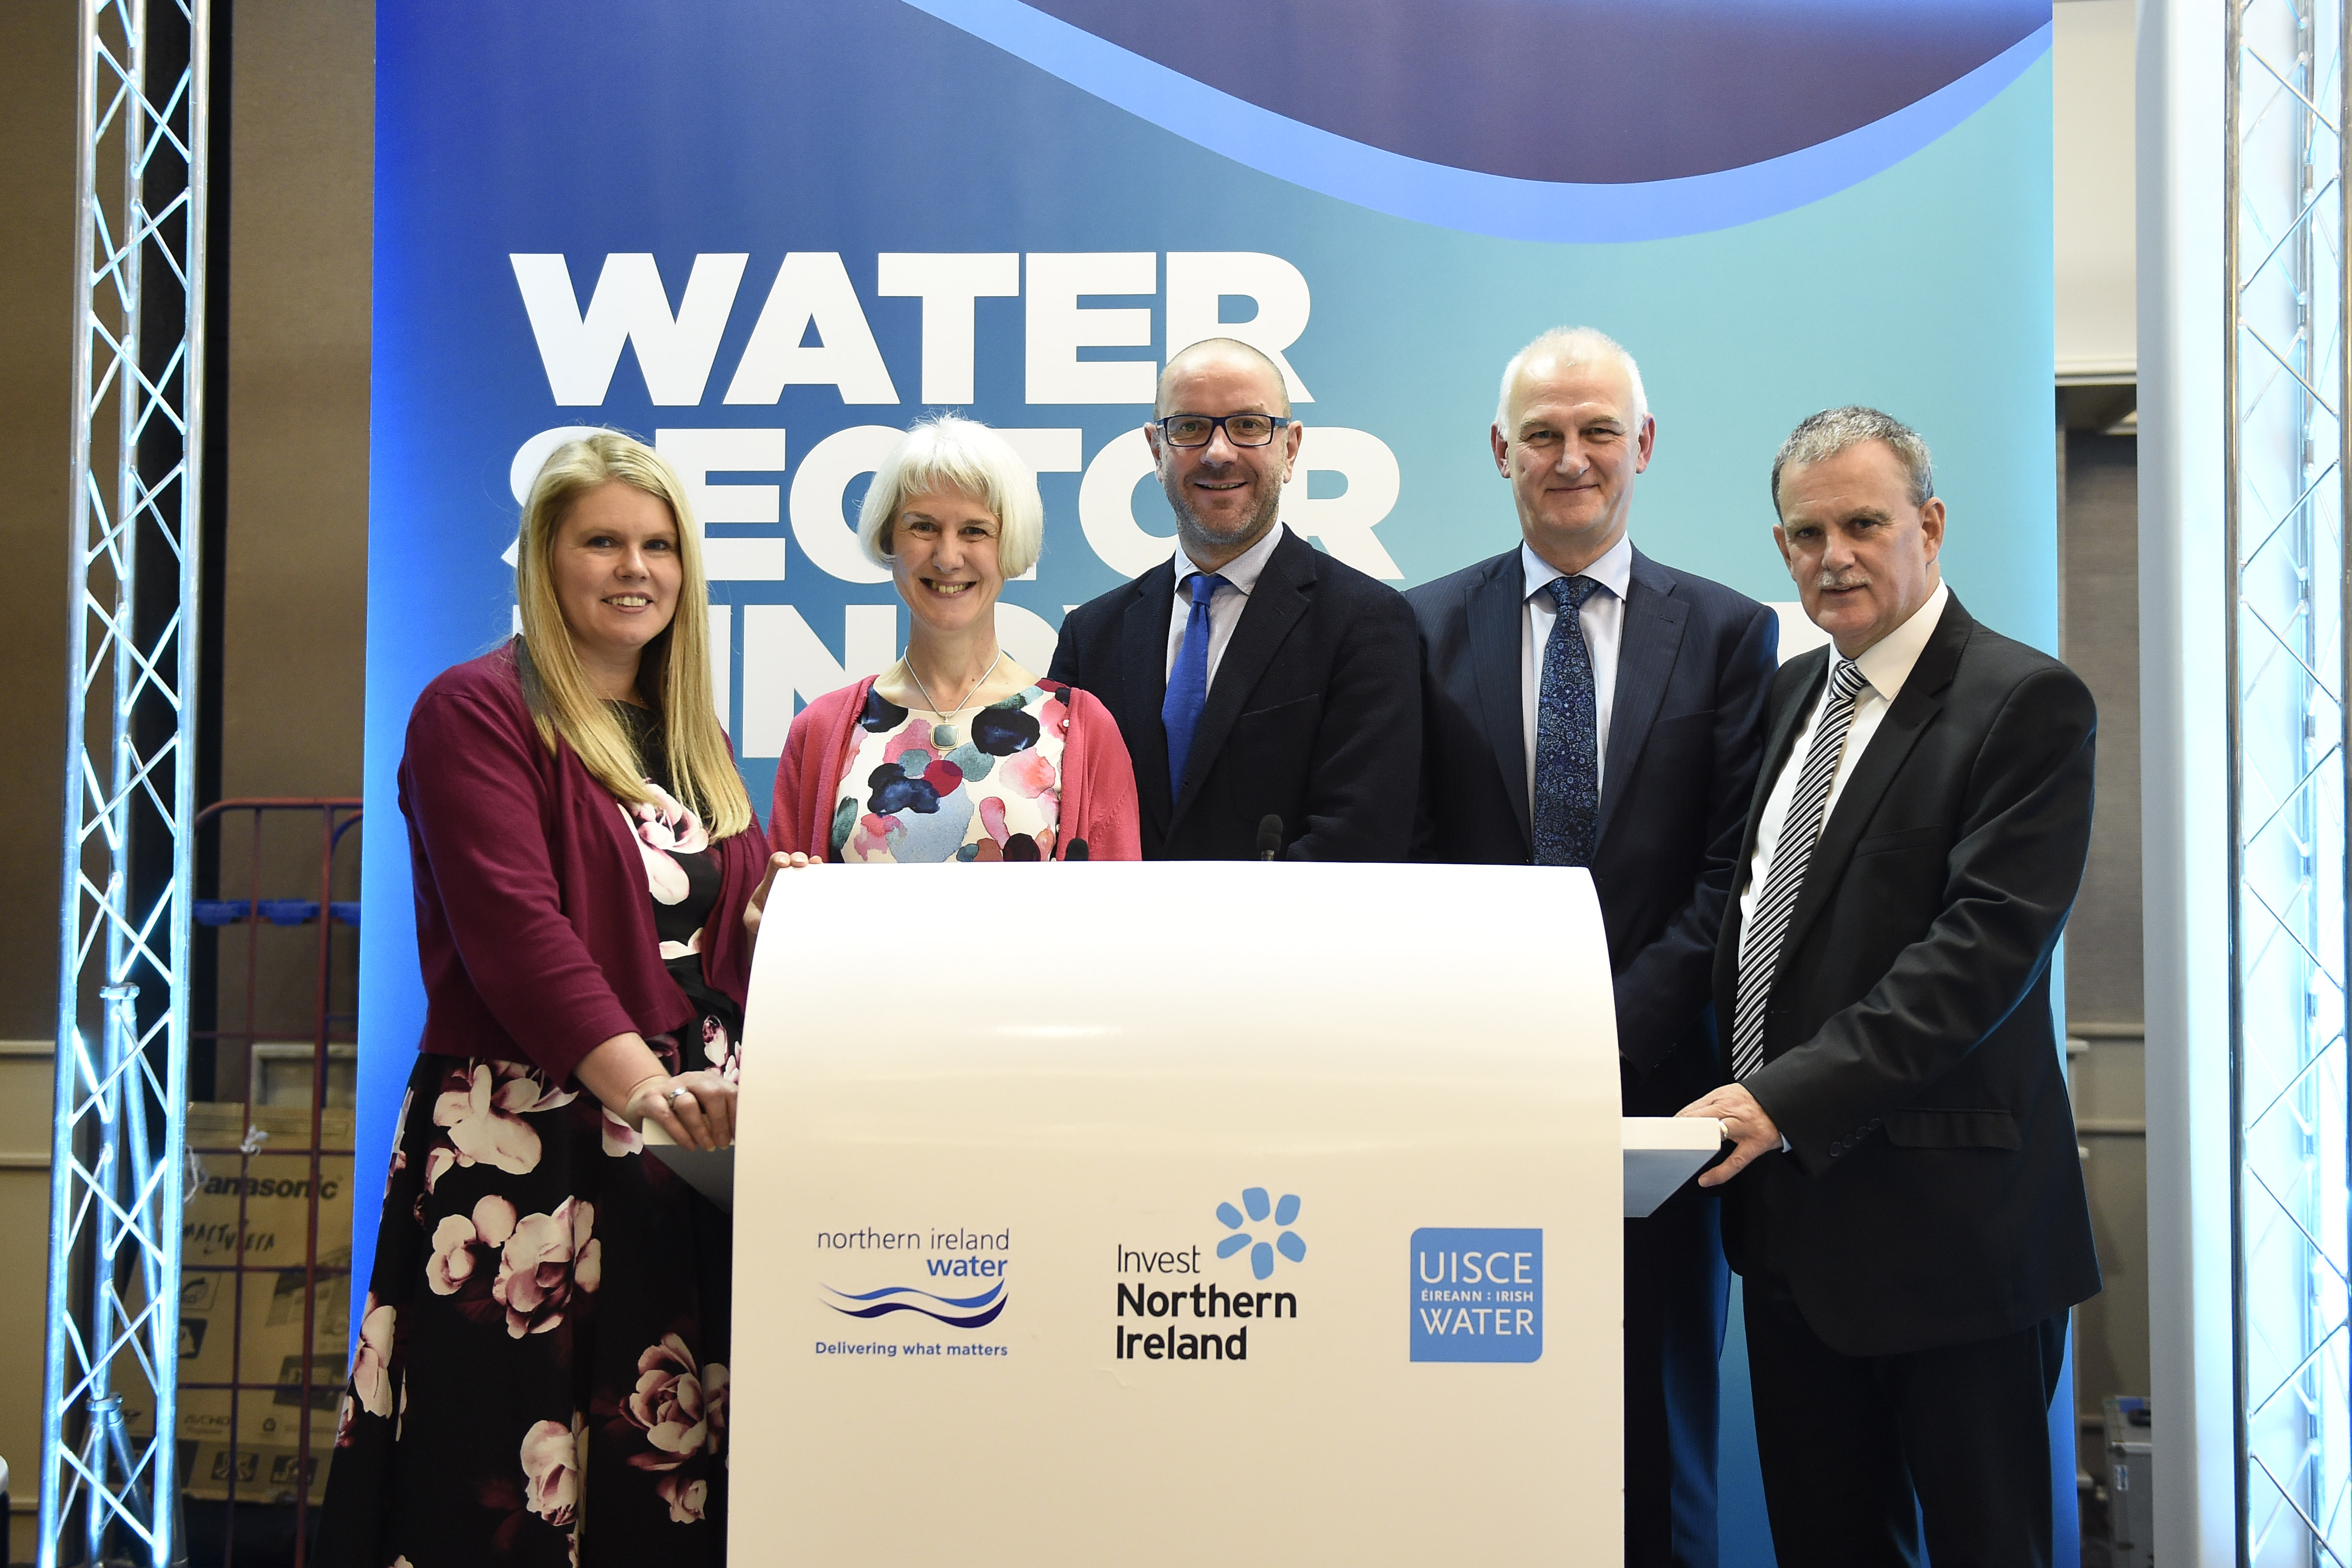 NI Water CEO Sara Venning with Jane Mellor, NI Water's Head of Operational Procurement; John Joyce, Stockholm International Water Institute; Paul Harper, NI Water's Director of Asset Delivery; and Sam Knox of Invest NI.